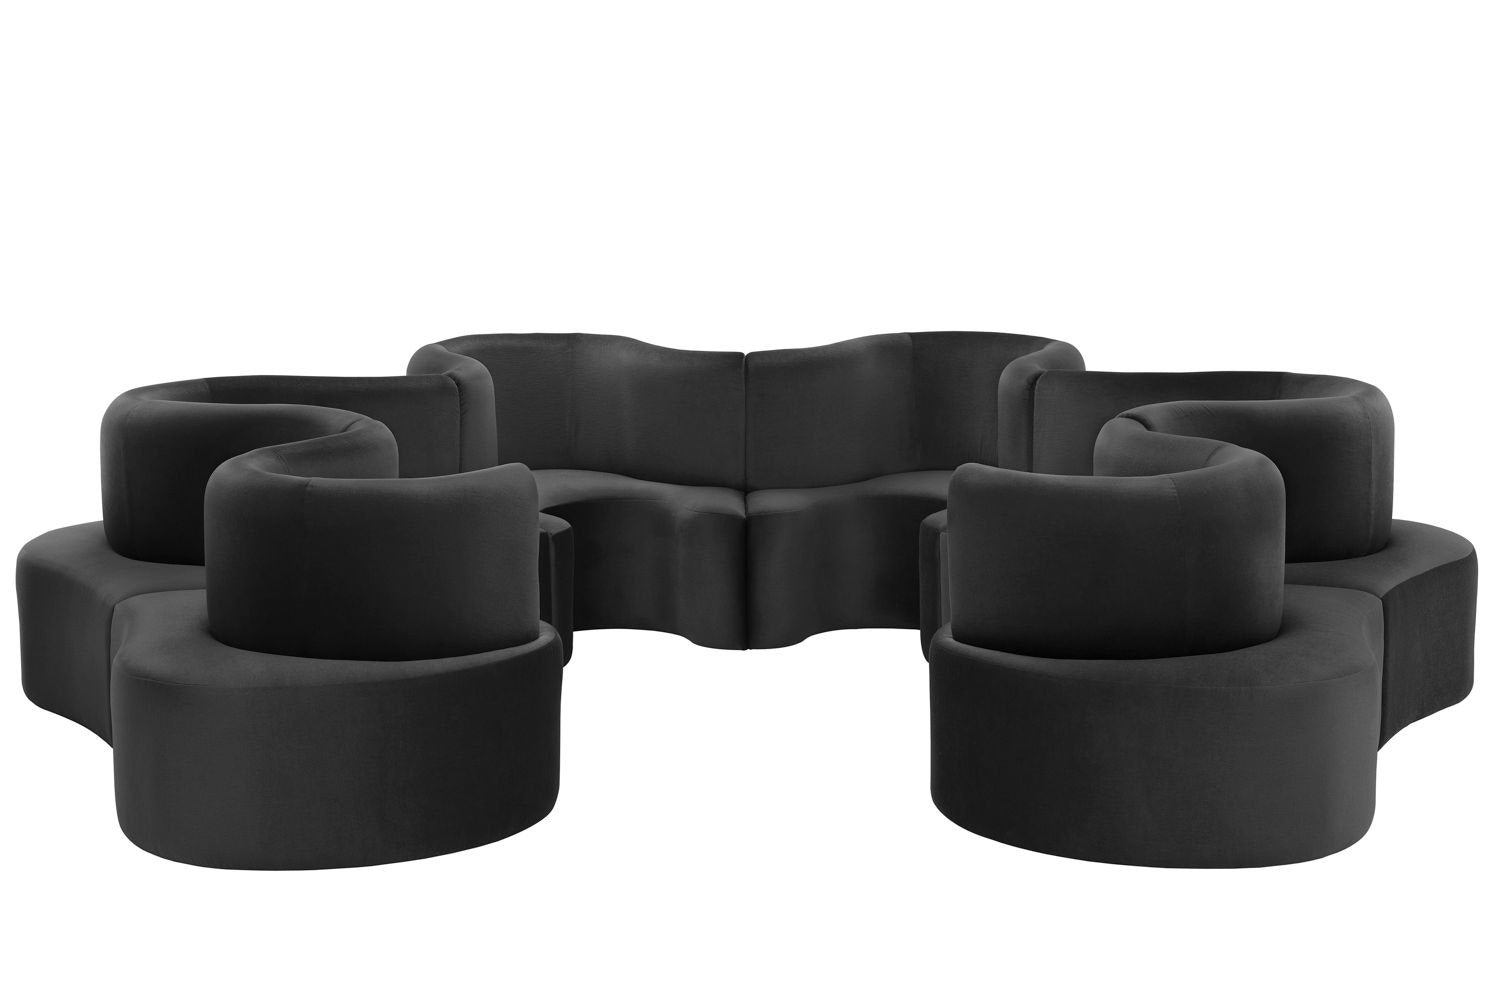 Cloverleaf Sofa - 6 Units by Verner Panton for Verpan